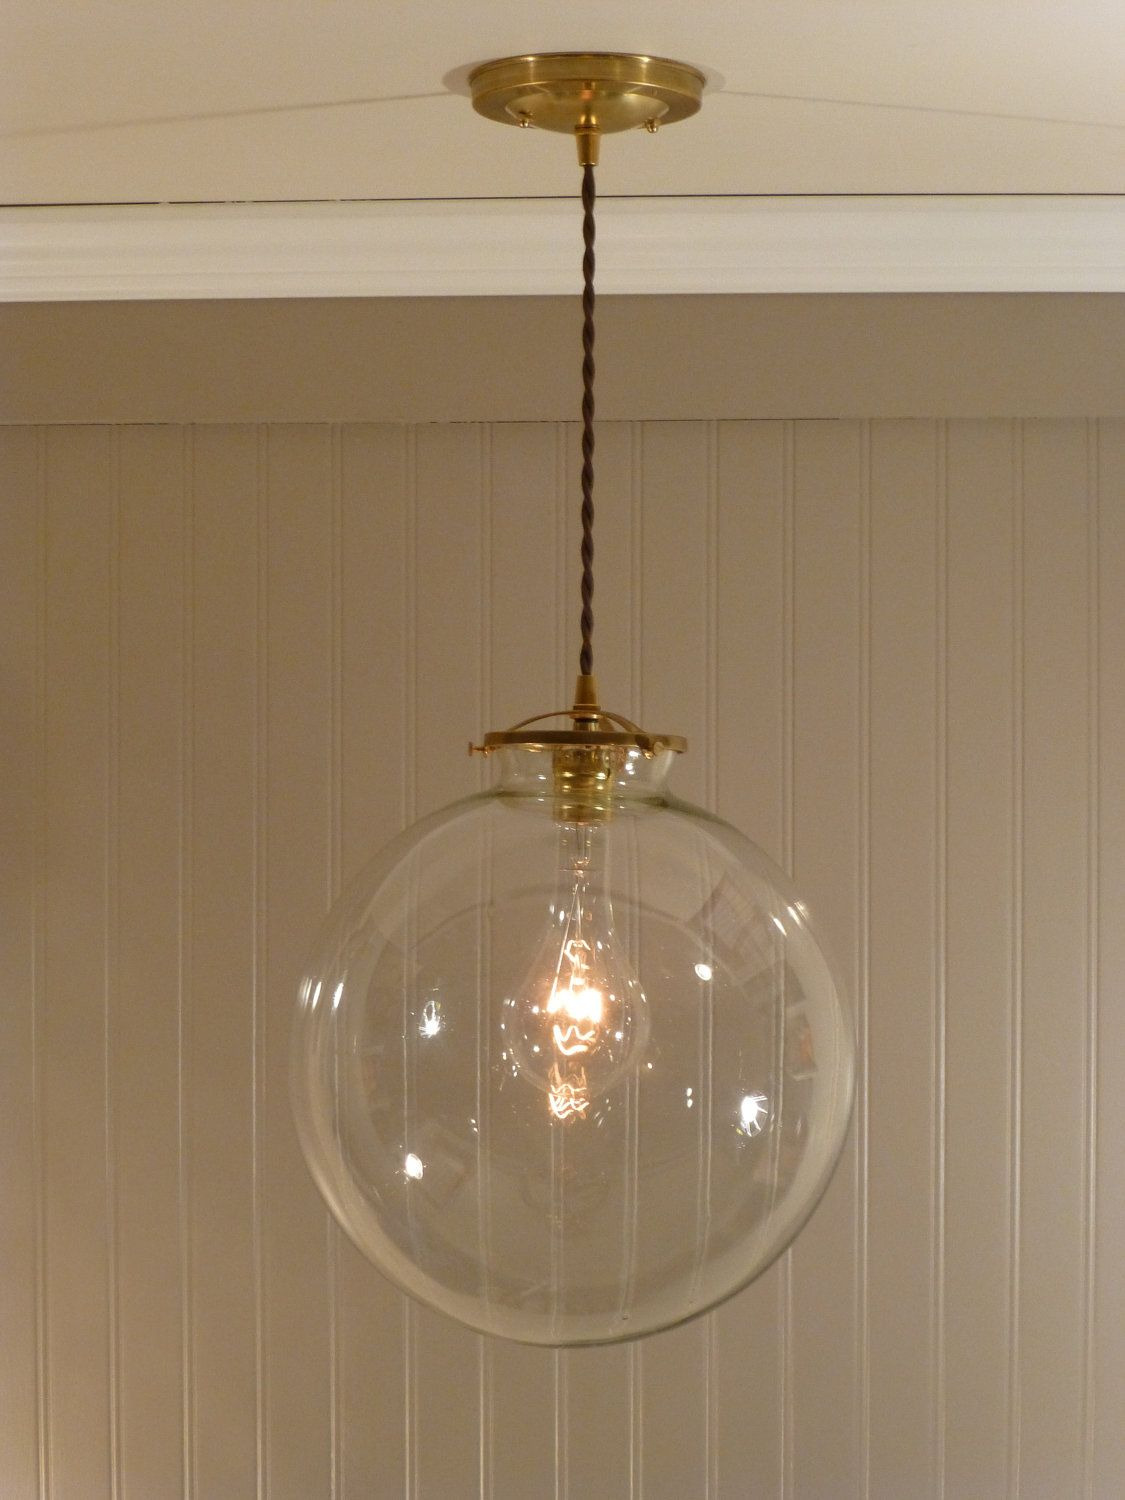 Brass pendant light with a 12 inch clear glass globe 12800 via brass pendant light with a 12 inch clear glass globe 12800 via etsy aloadofball Image collections